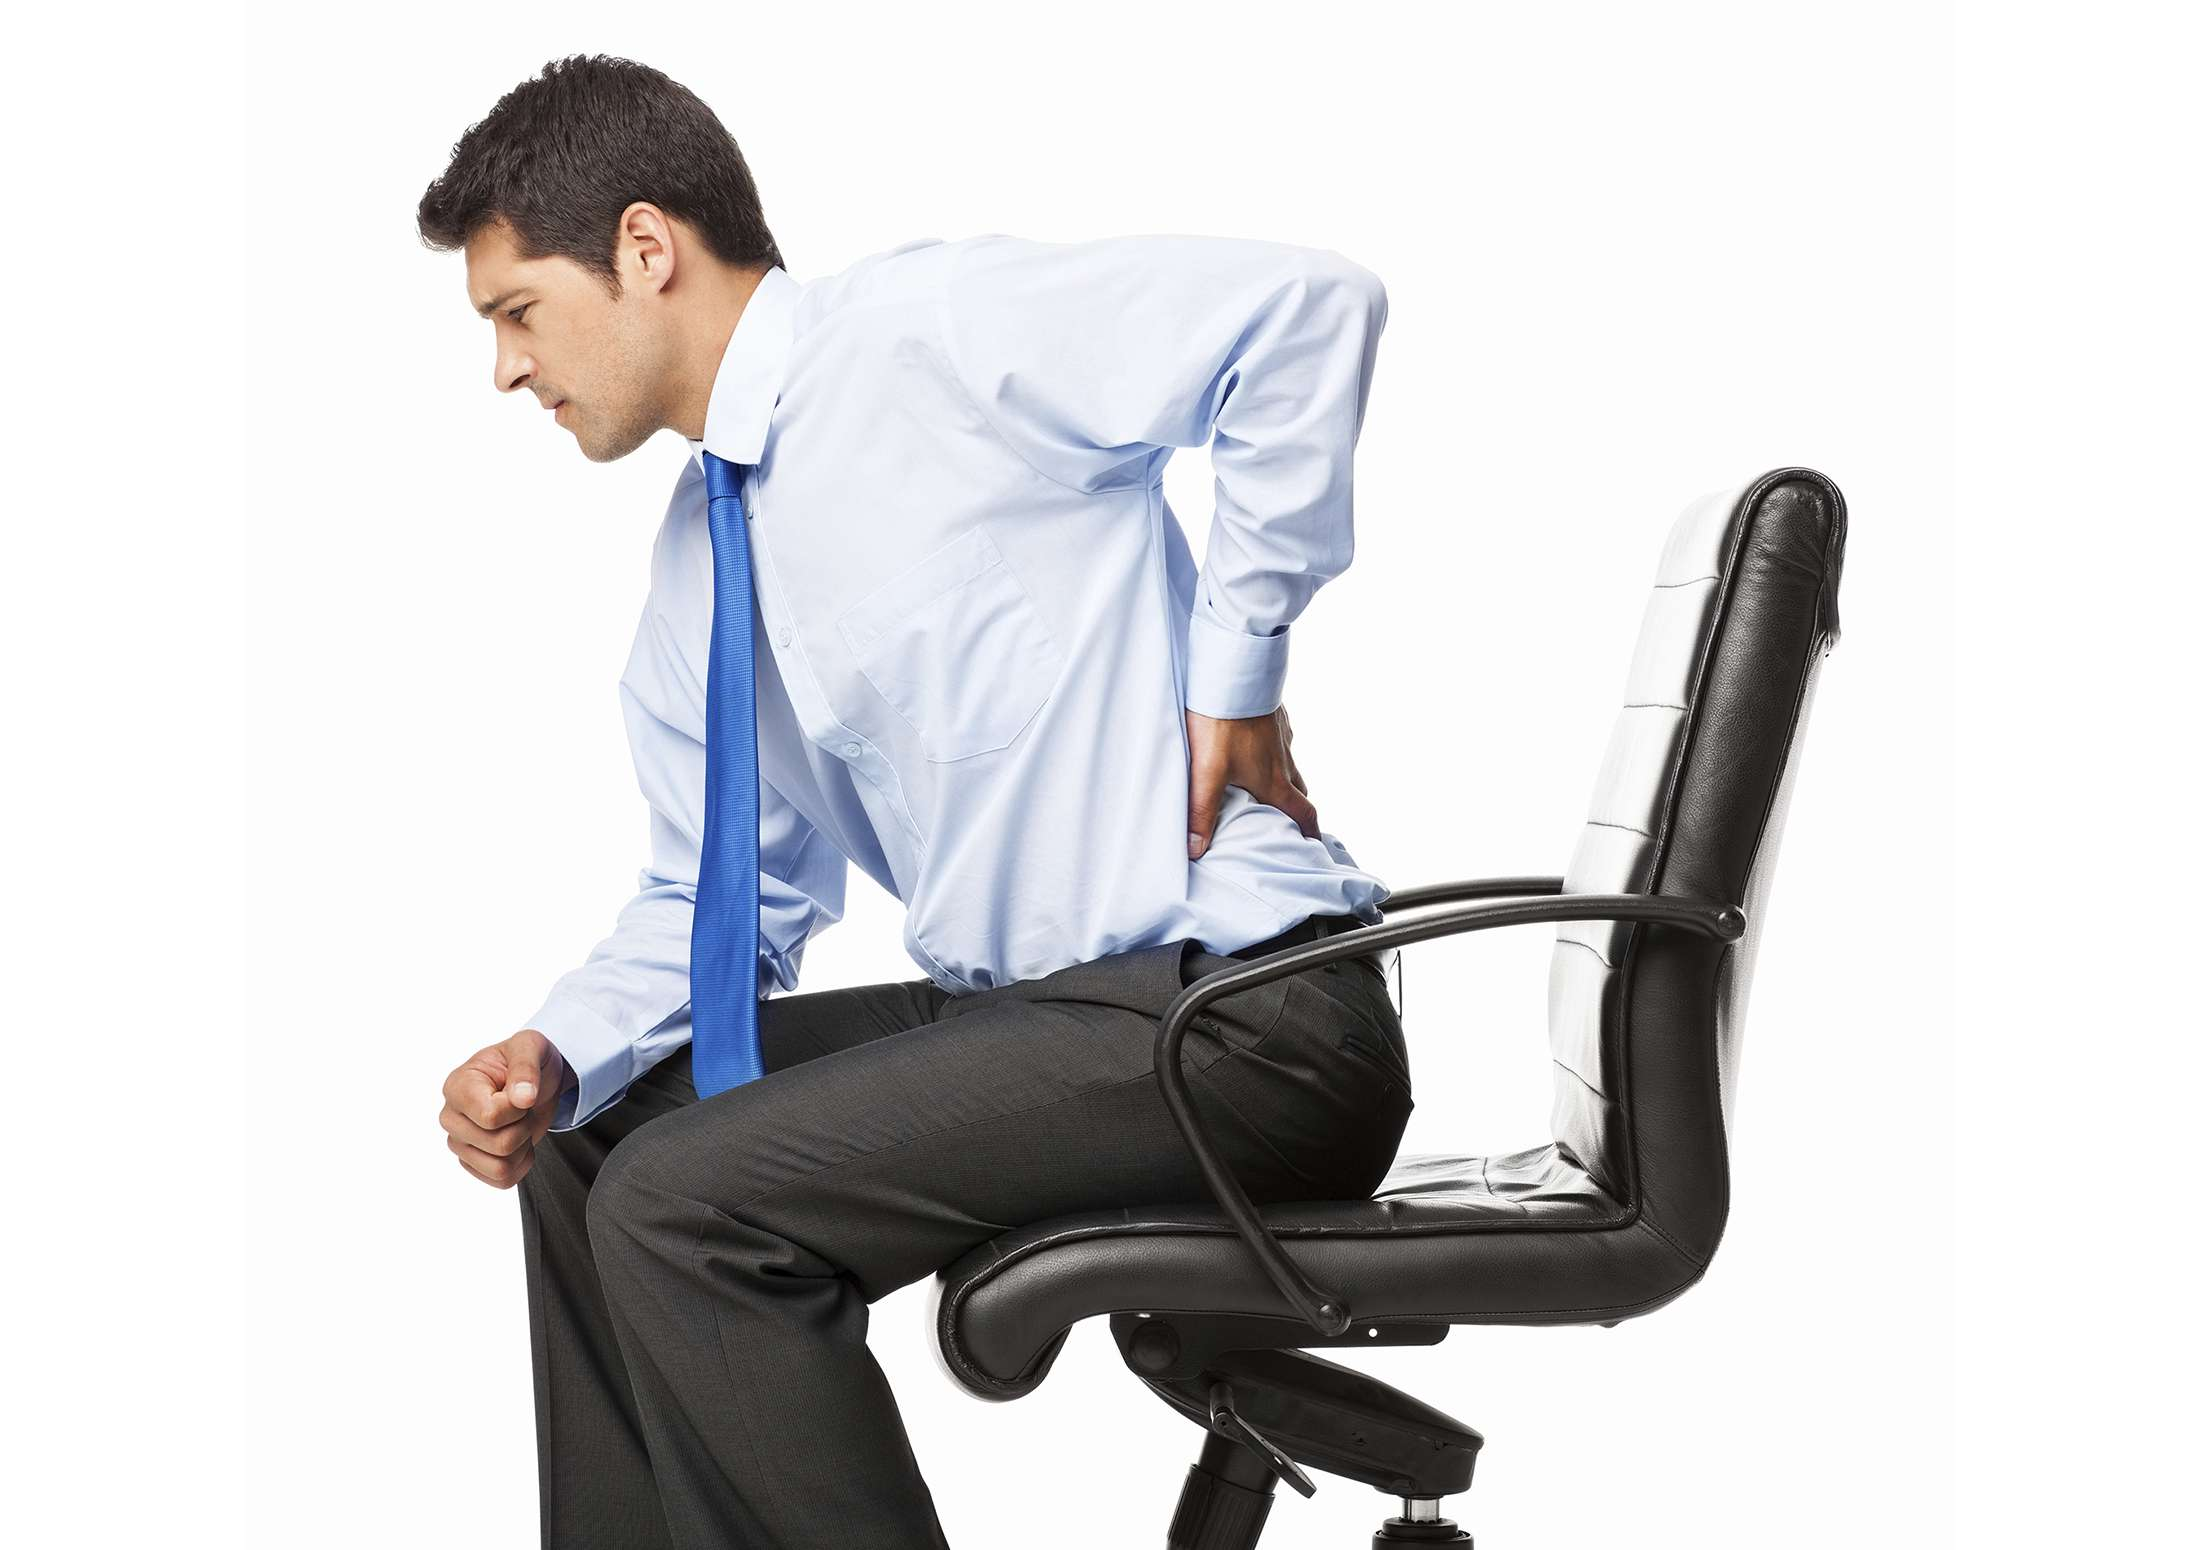 Man with back pain sitting on a small office chair